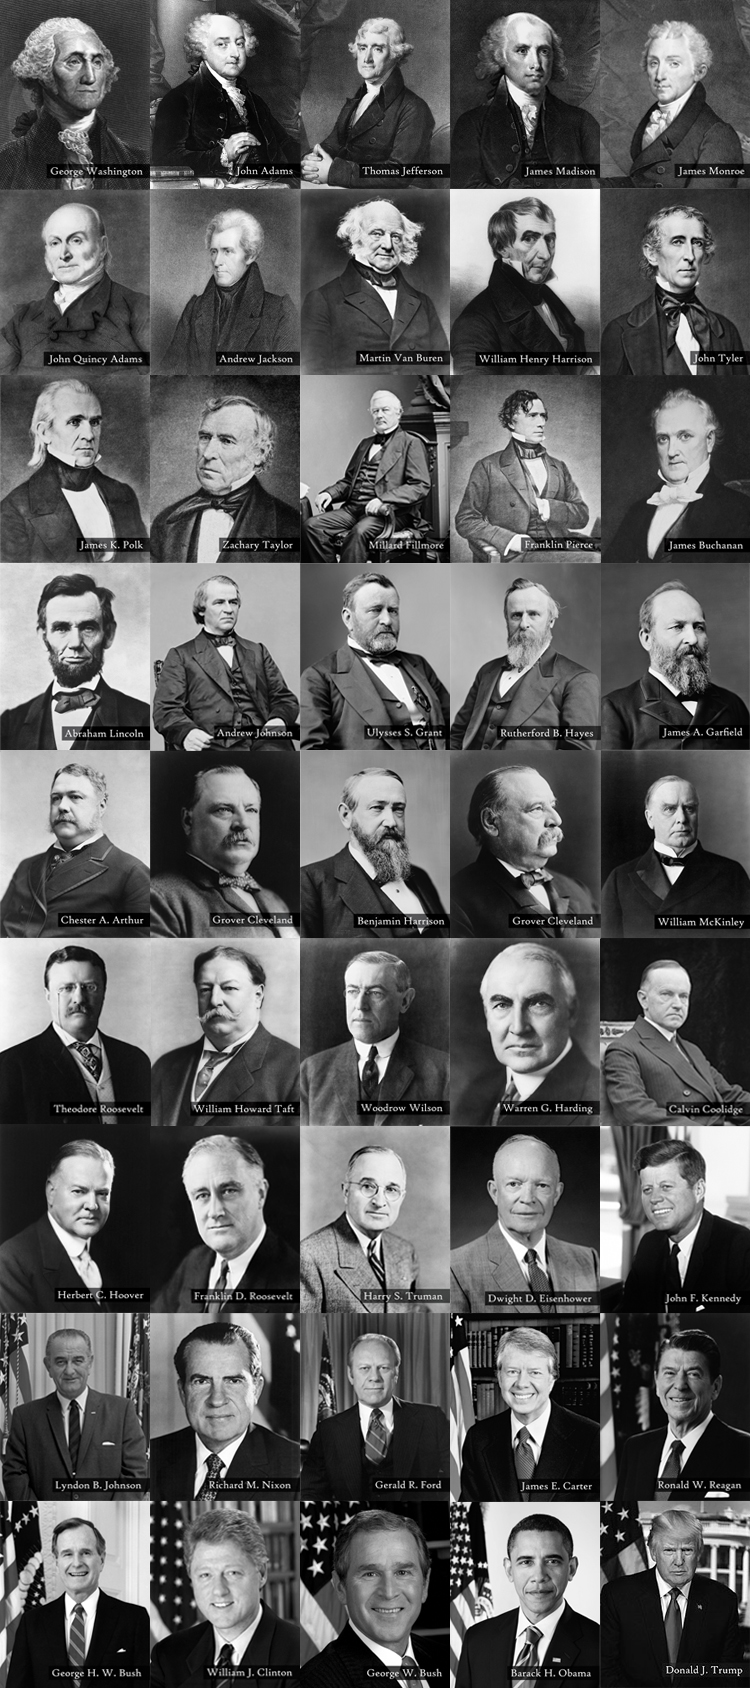 Official Presidential Photos Complete B&W Collection w/ Names Photo Prints For Sale